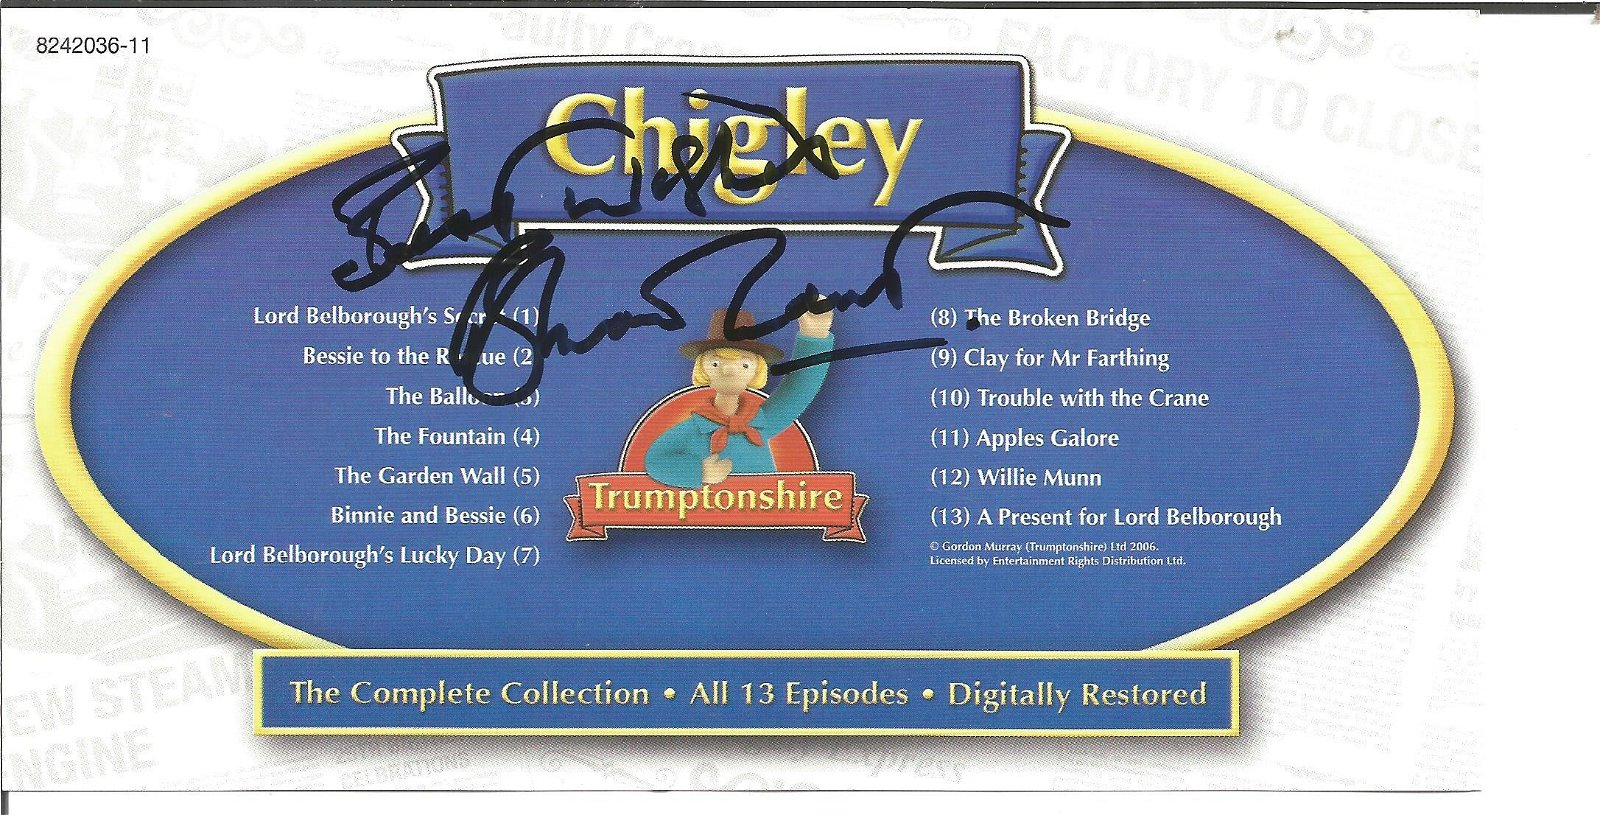 Brian Cant signed insert in Chigley DVD, Included .